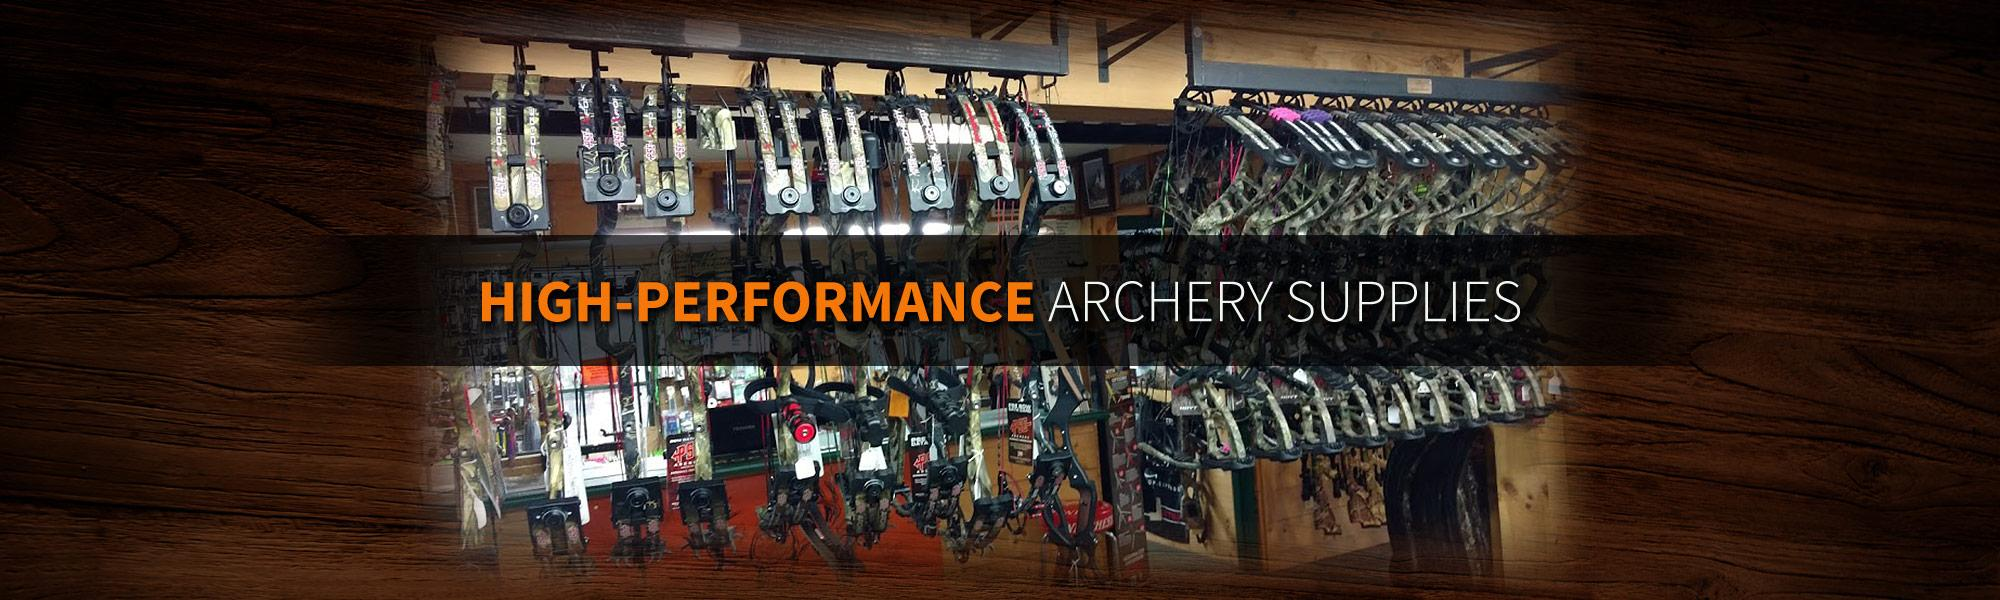 High-Performance Archery Supplies